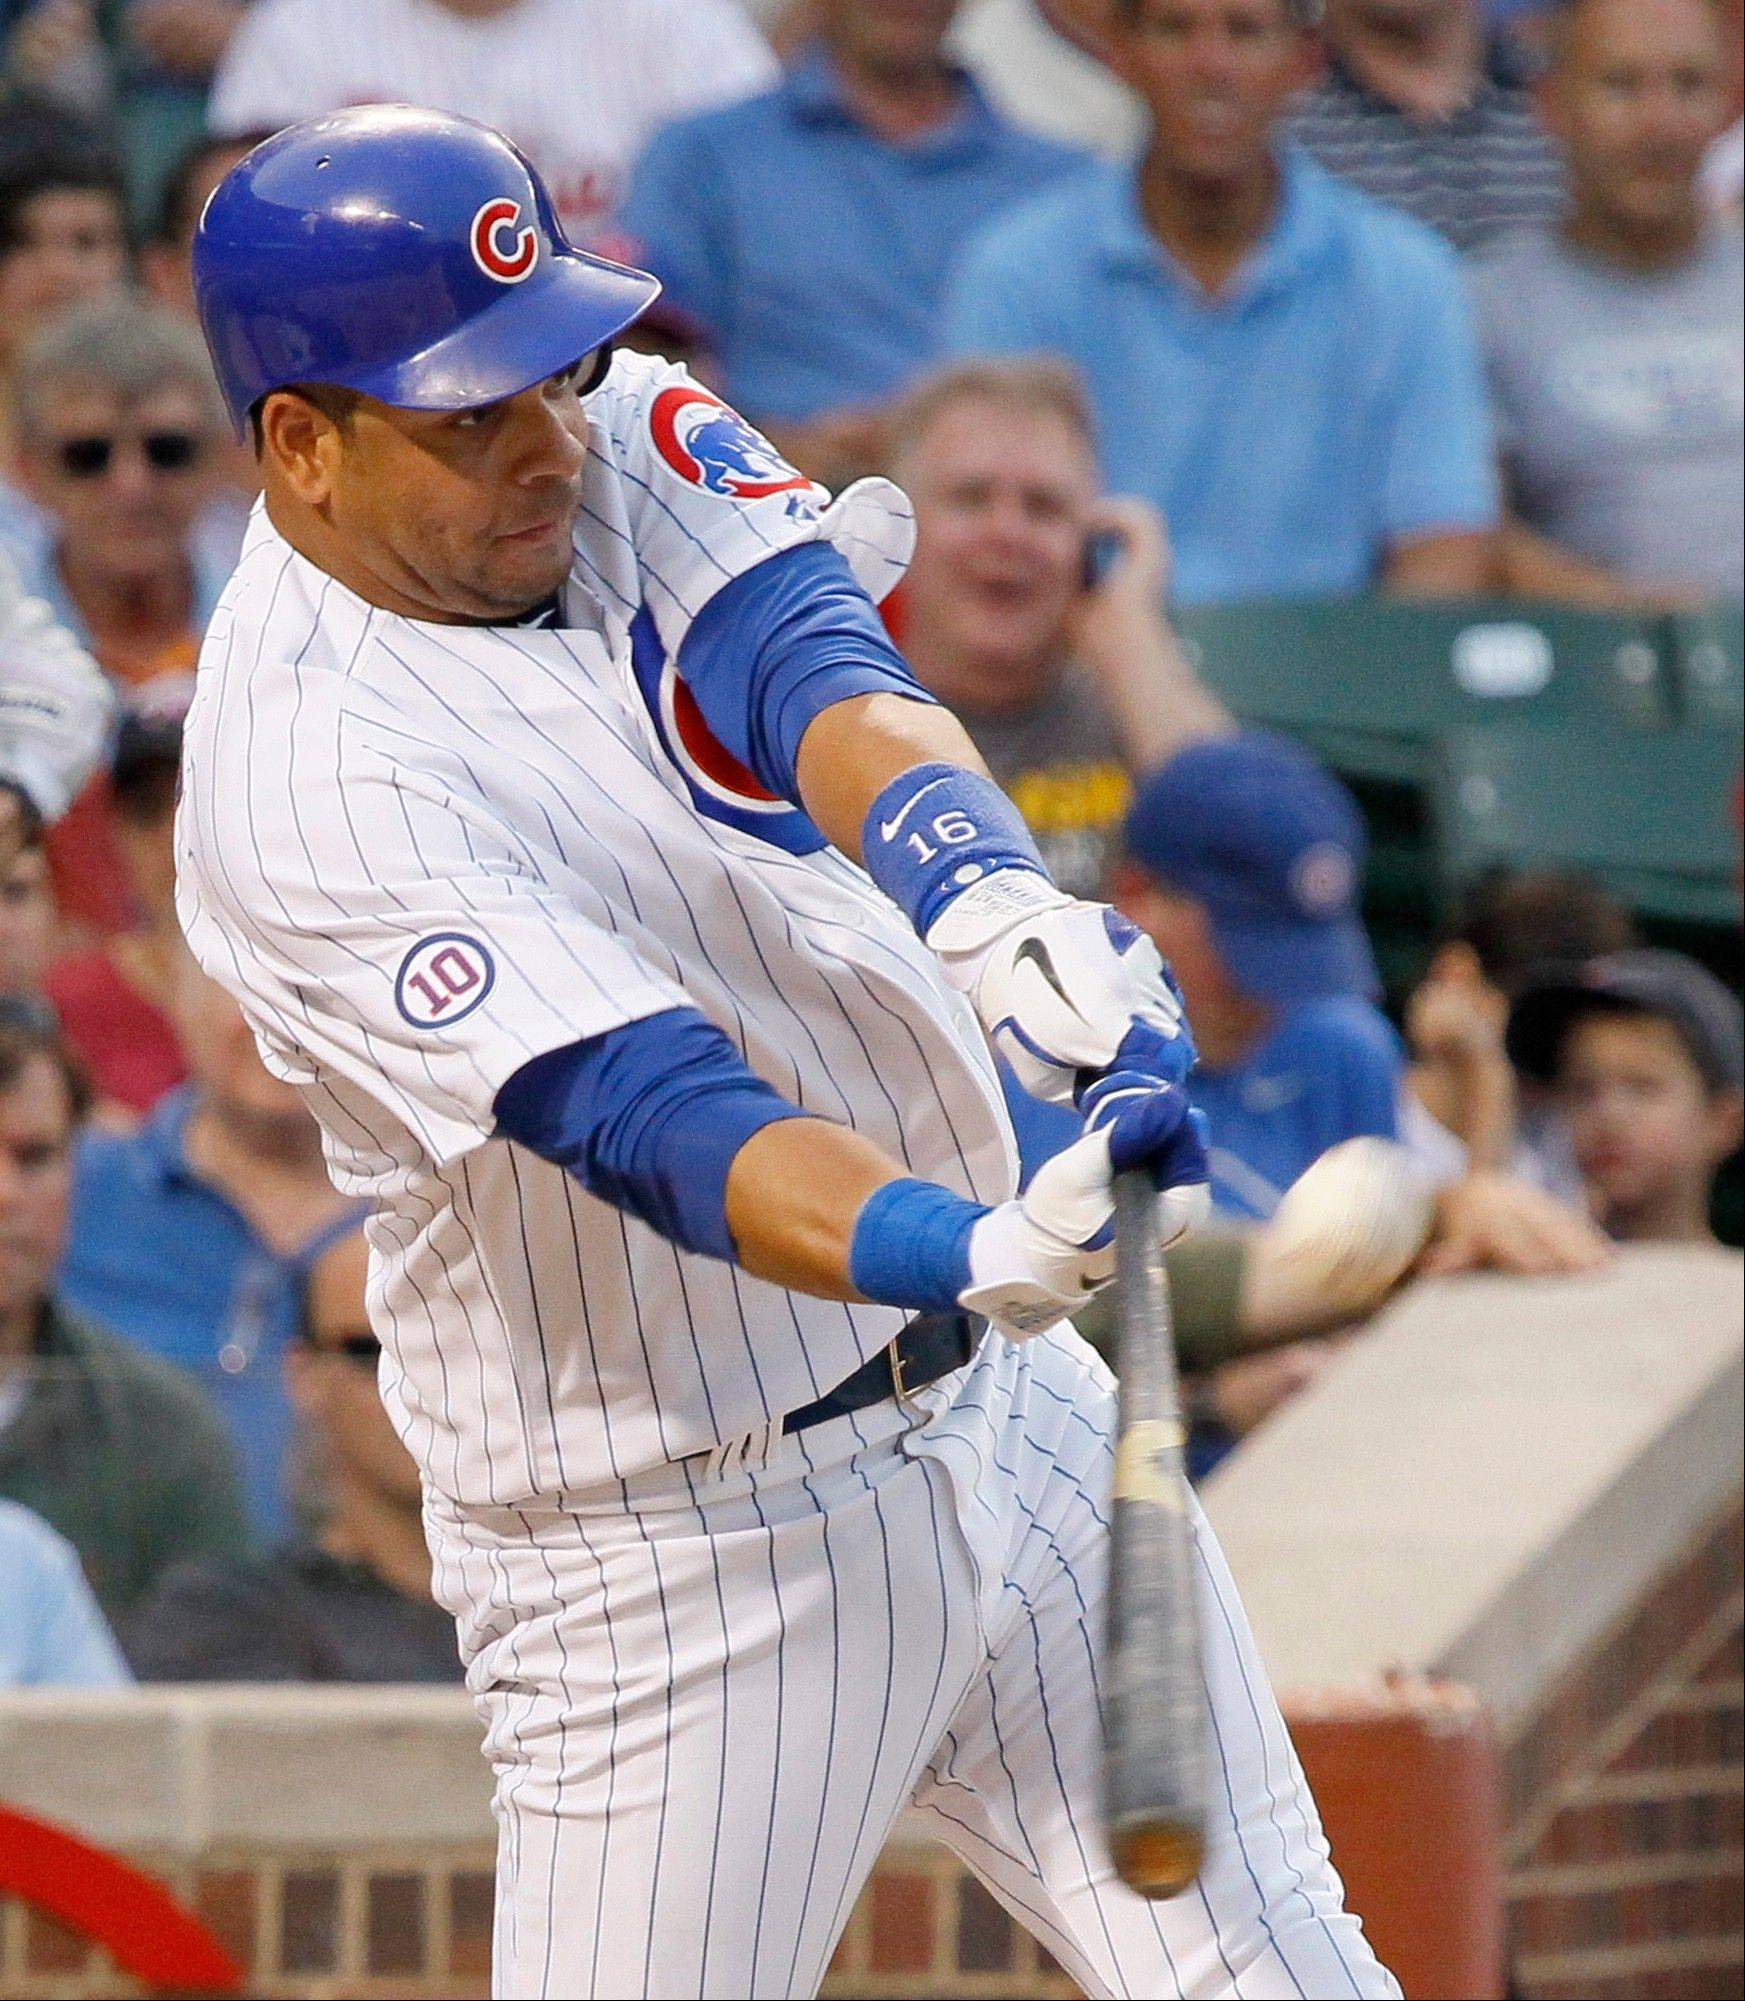 Cubs slugger Aramis Ramirez says he's not interested in being traded to another team.